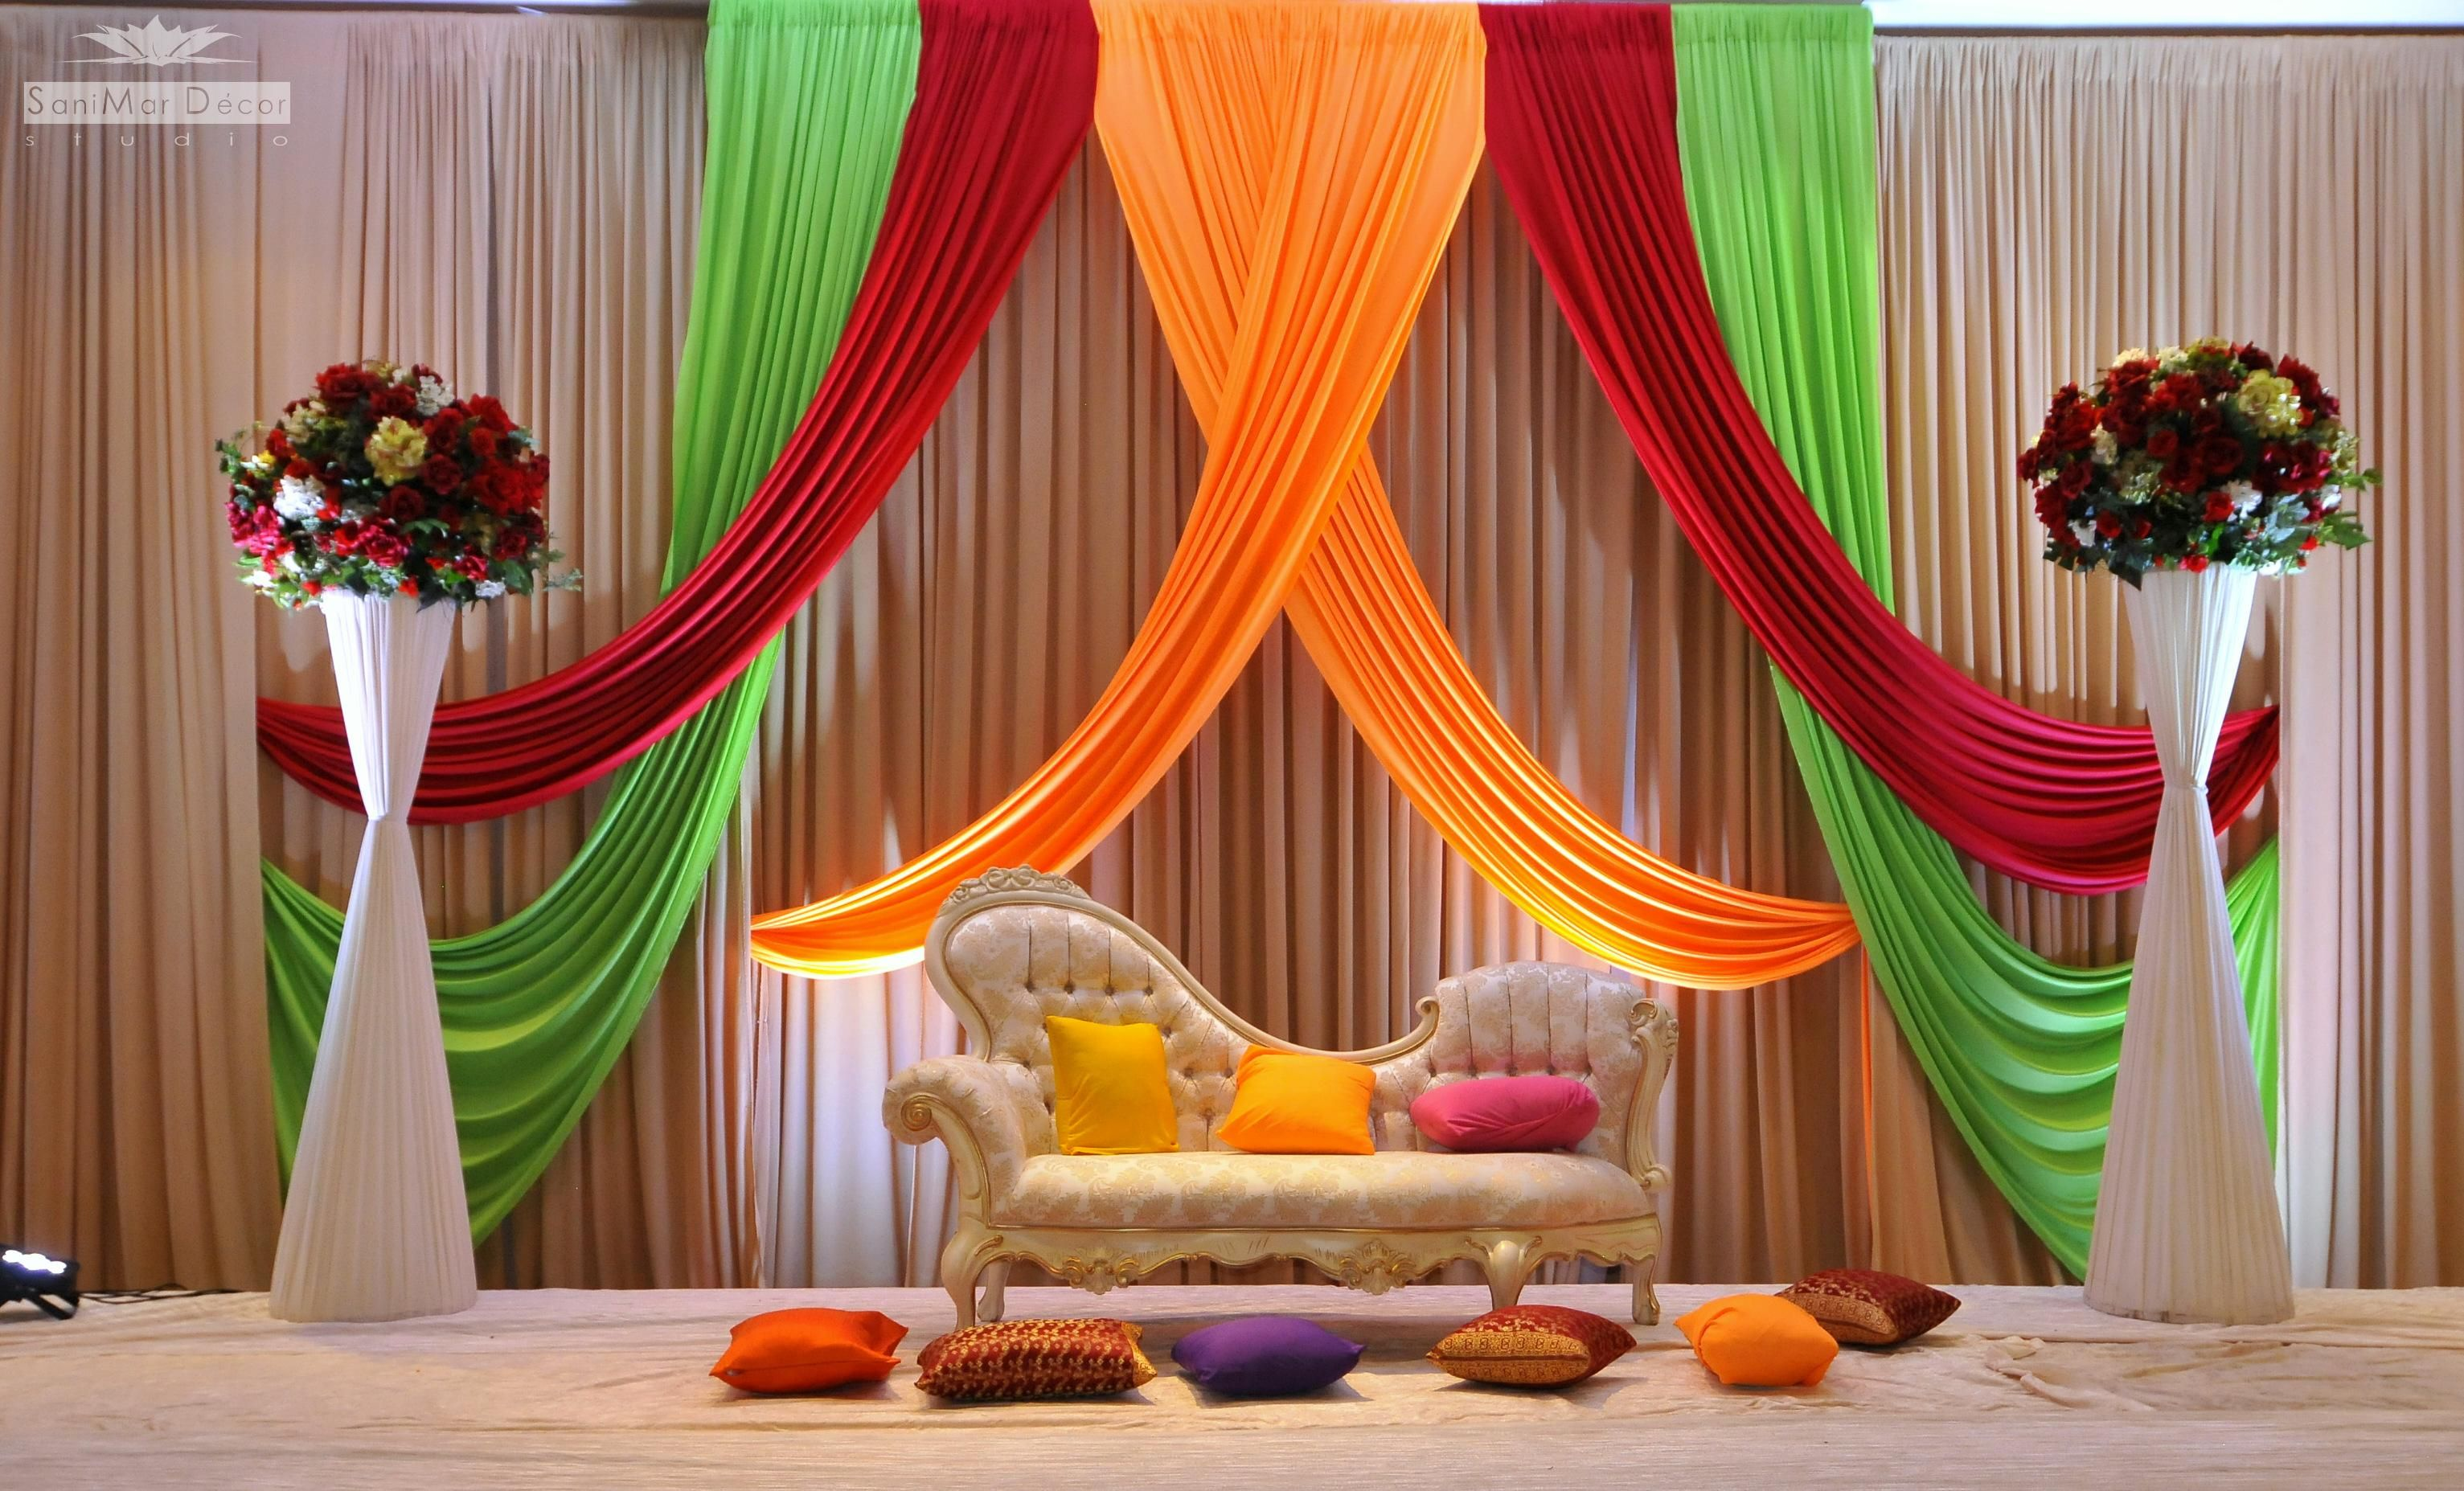 Window decor for wedding  wedding stage decoration wedding decorations natural decorations in